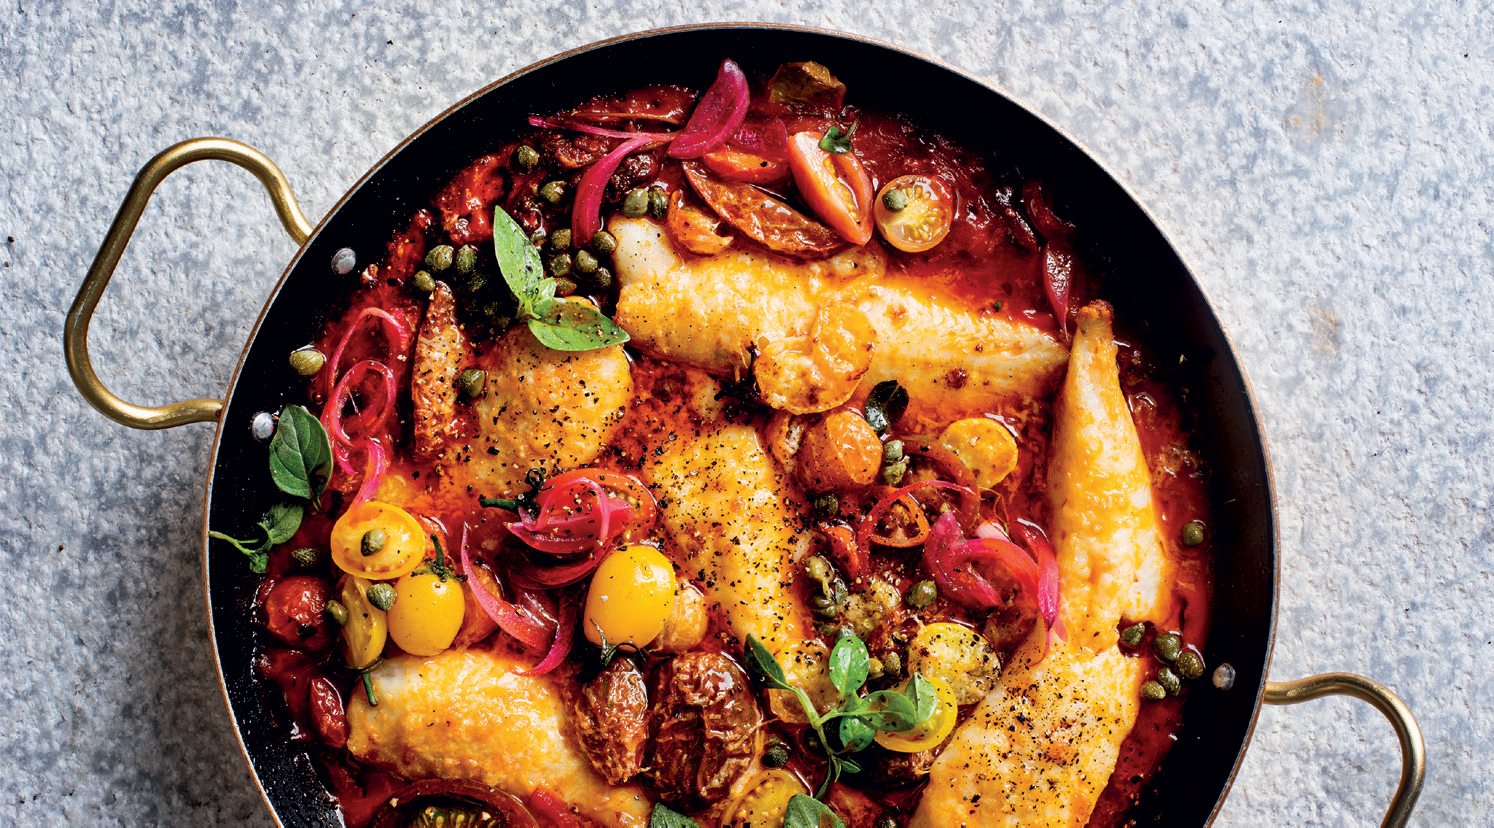 Puttanesca baked fish